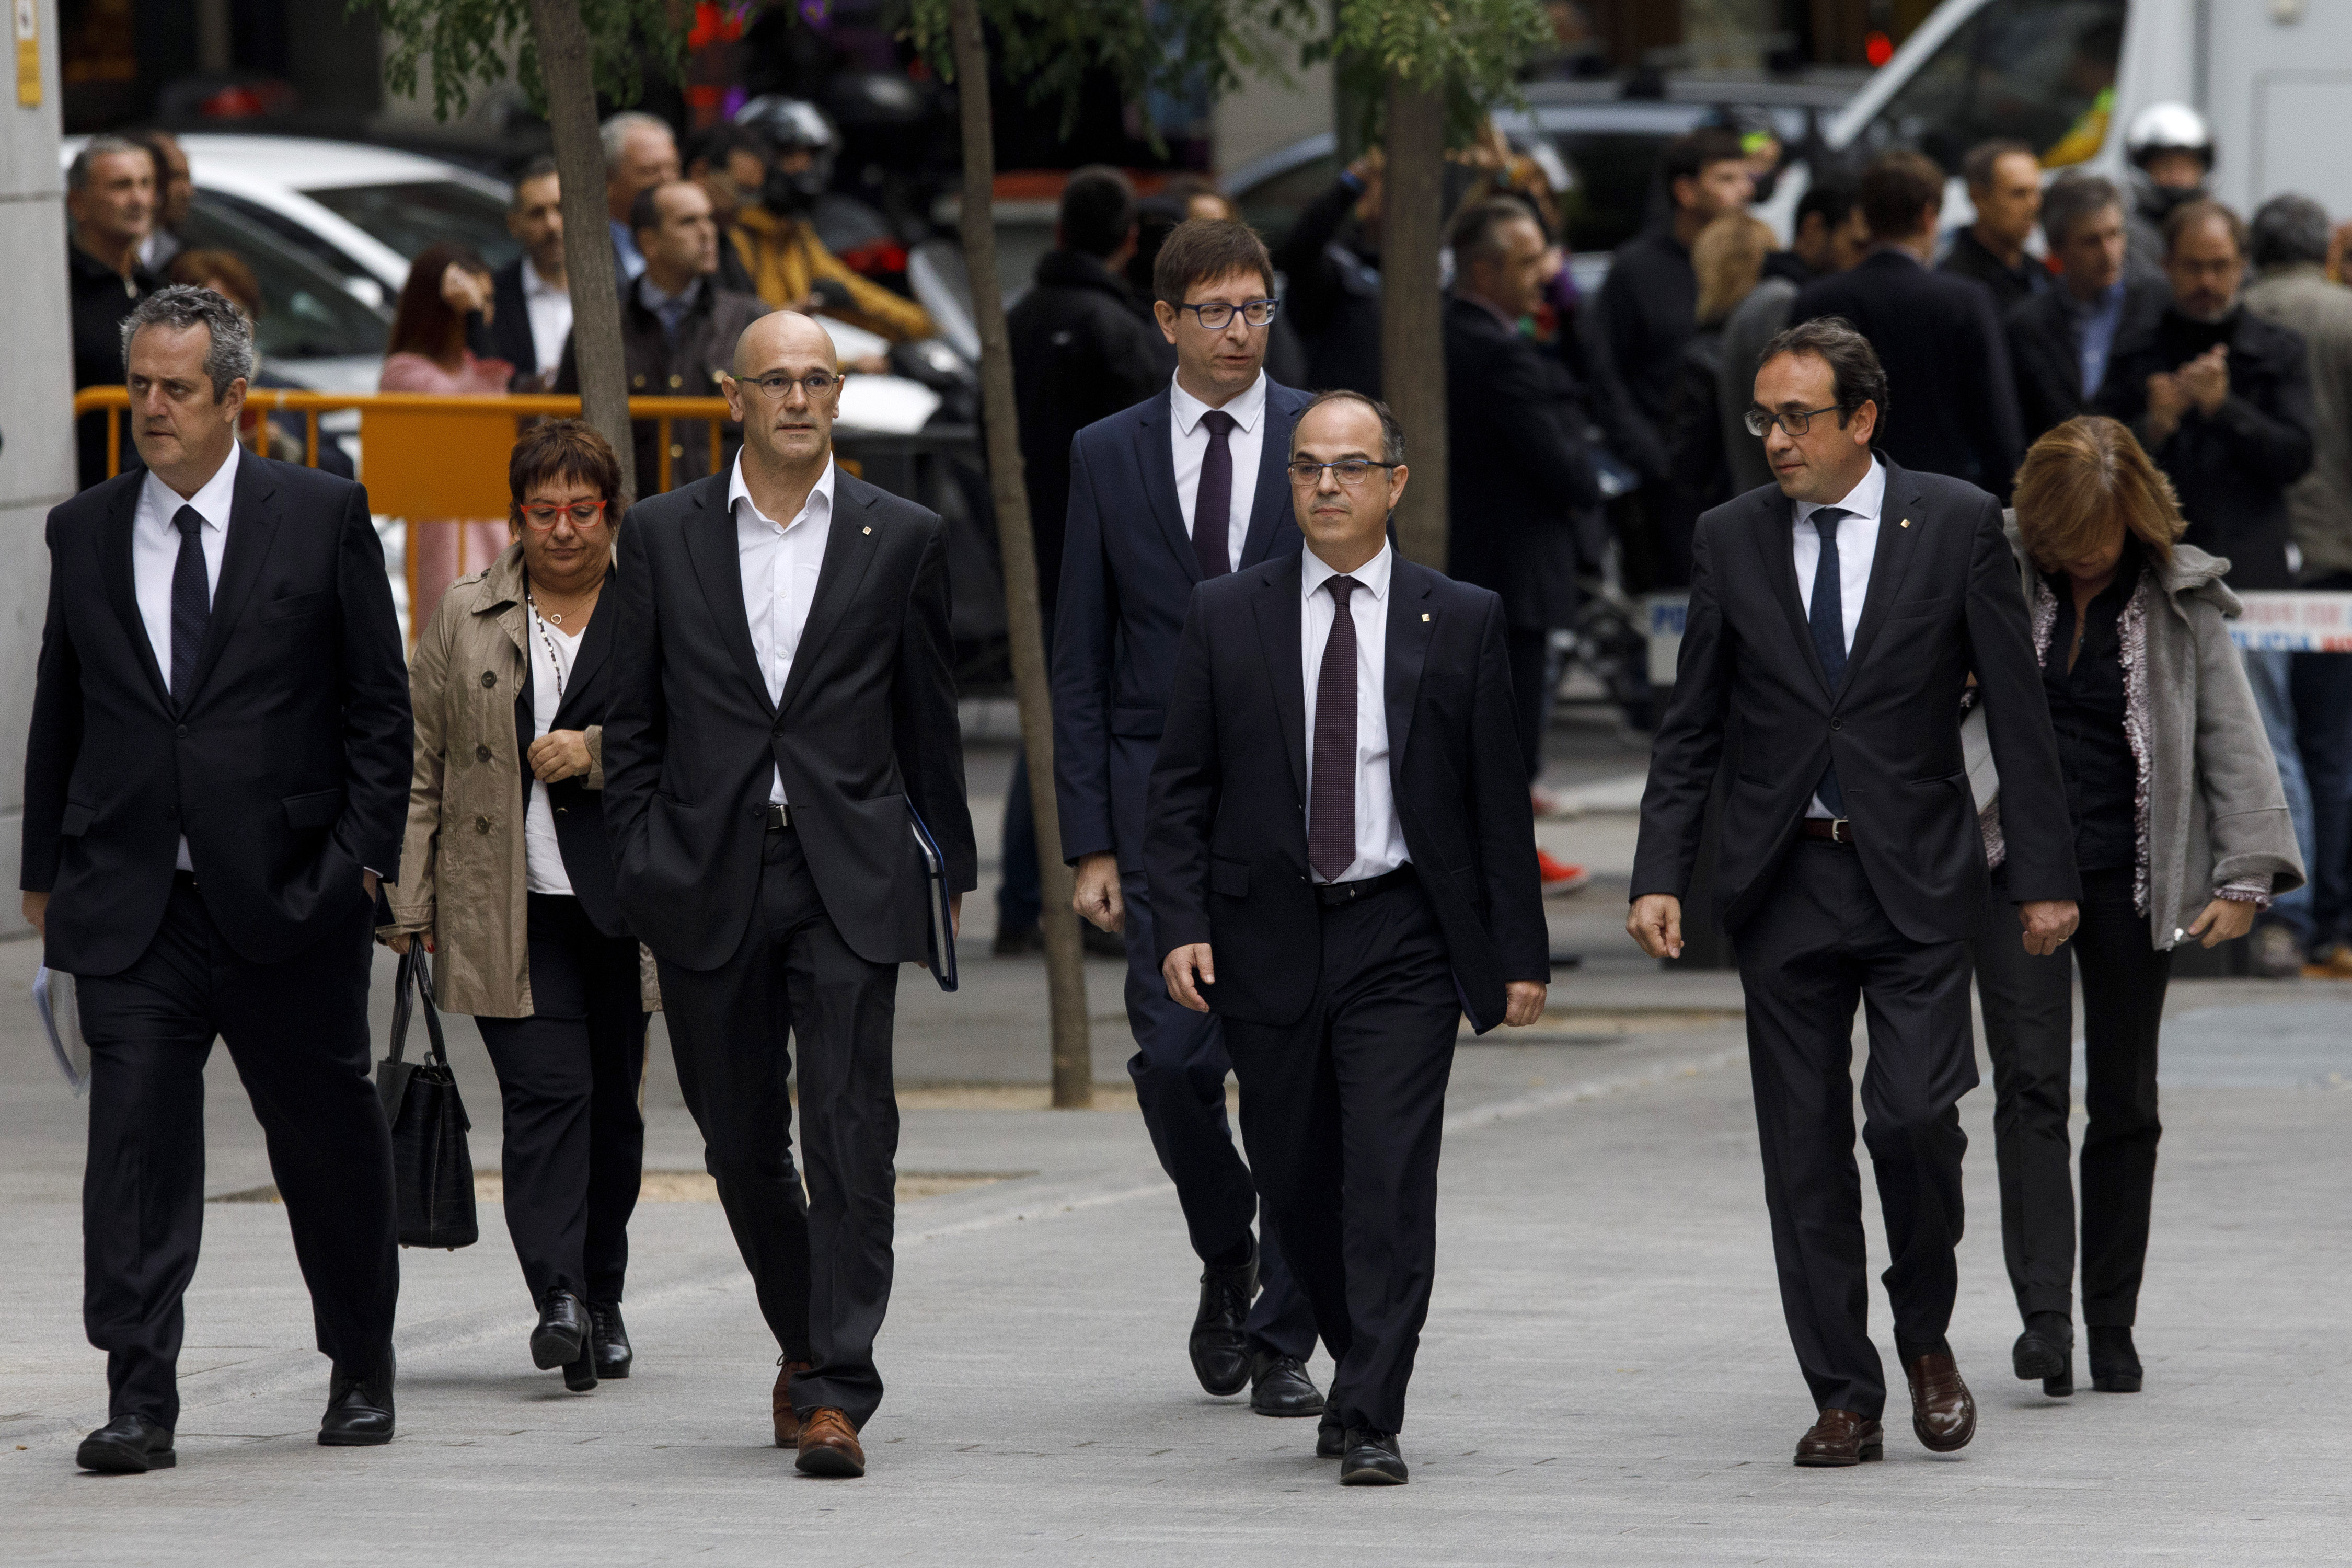 Catalan leaders request release from prison